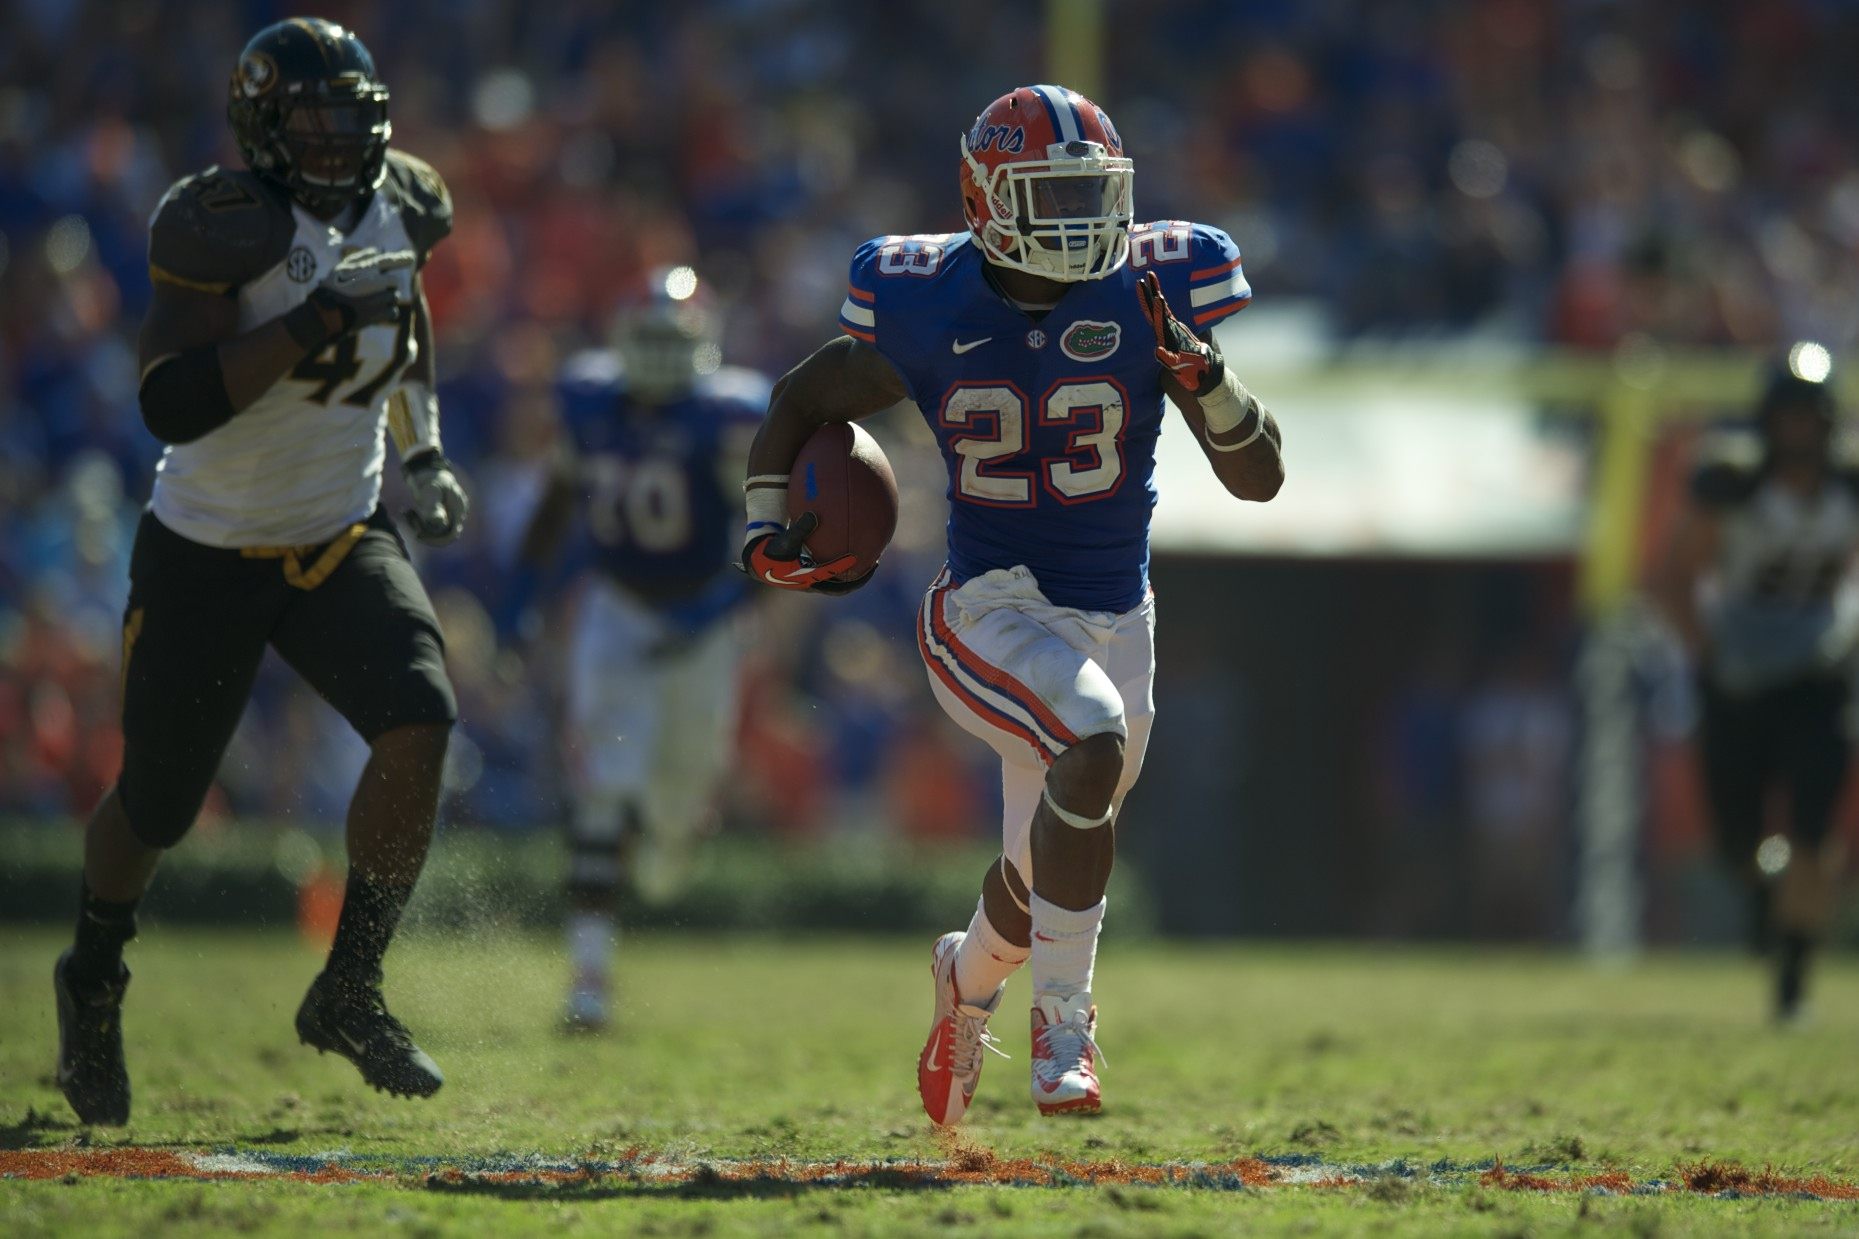 Mike Gillislee scored the second touchdown for Florida in the second half of Saturday's game against the Missouri Tigers.